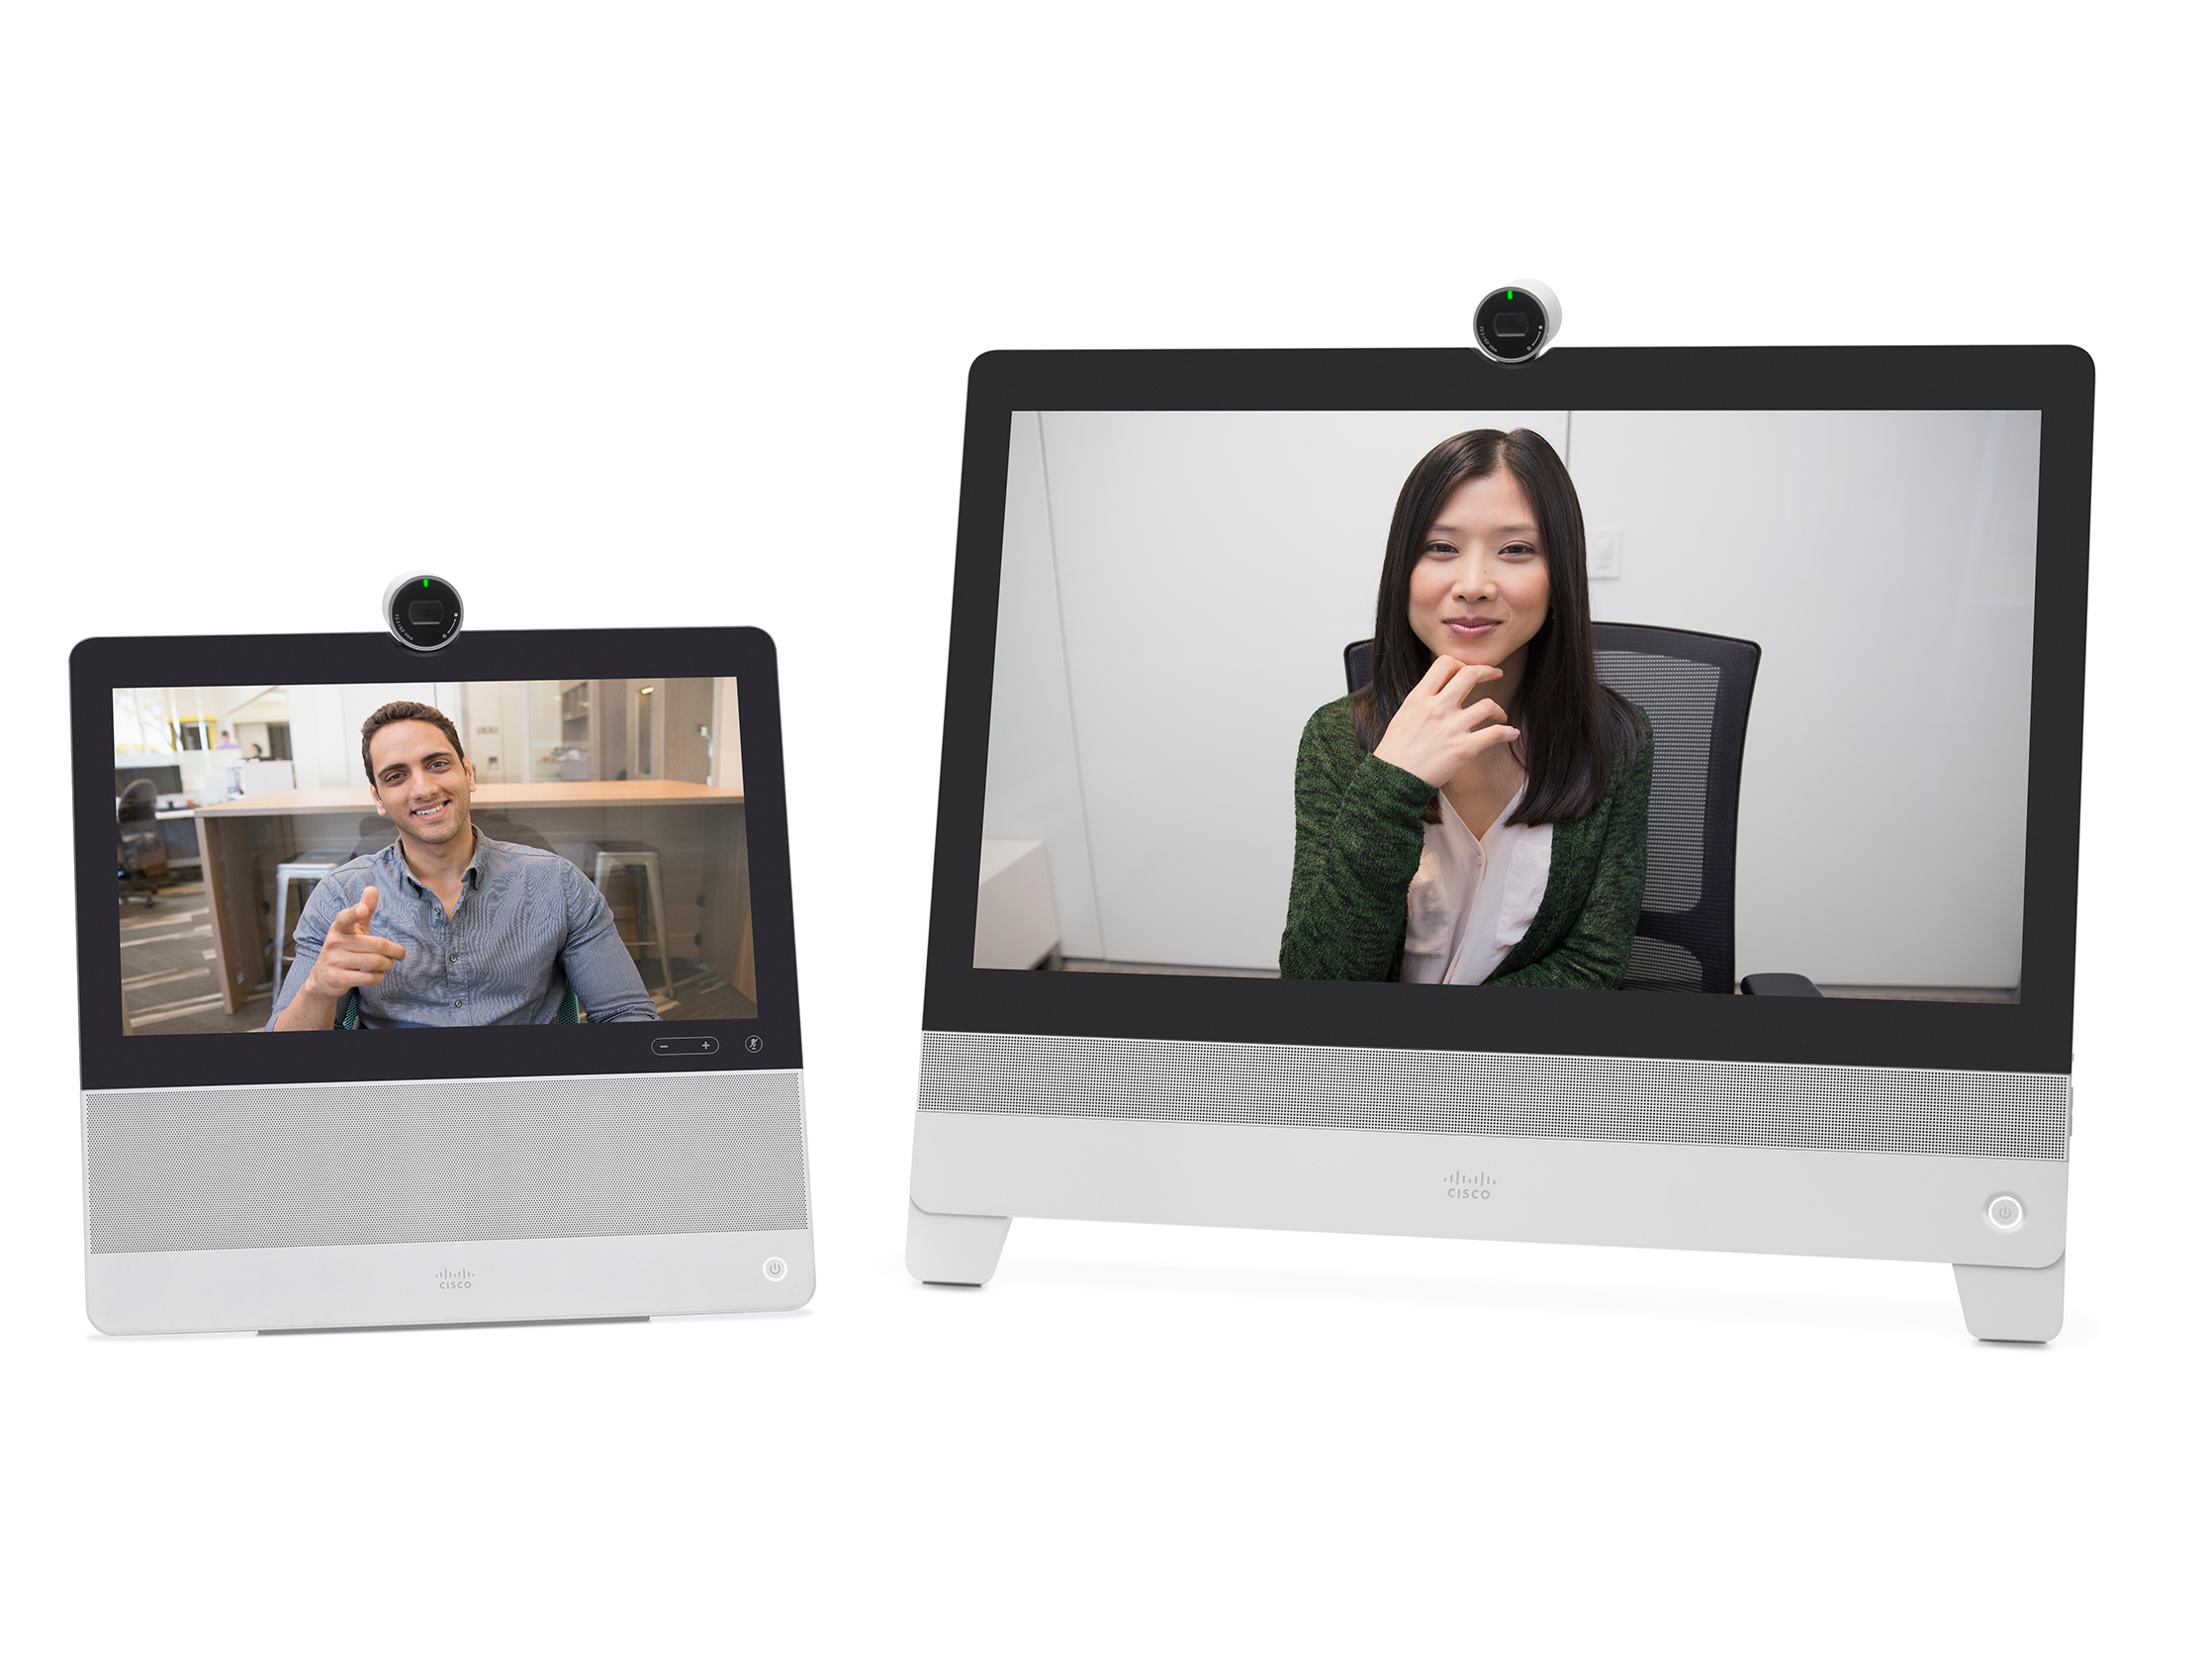 cisco jabber video for telepresence pdf